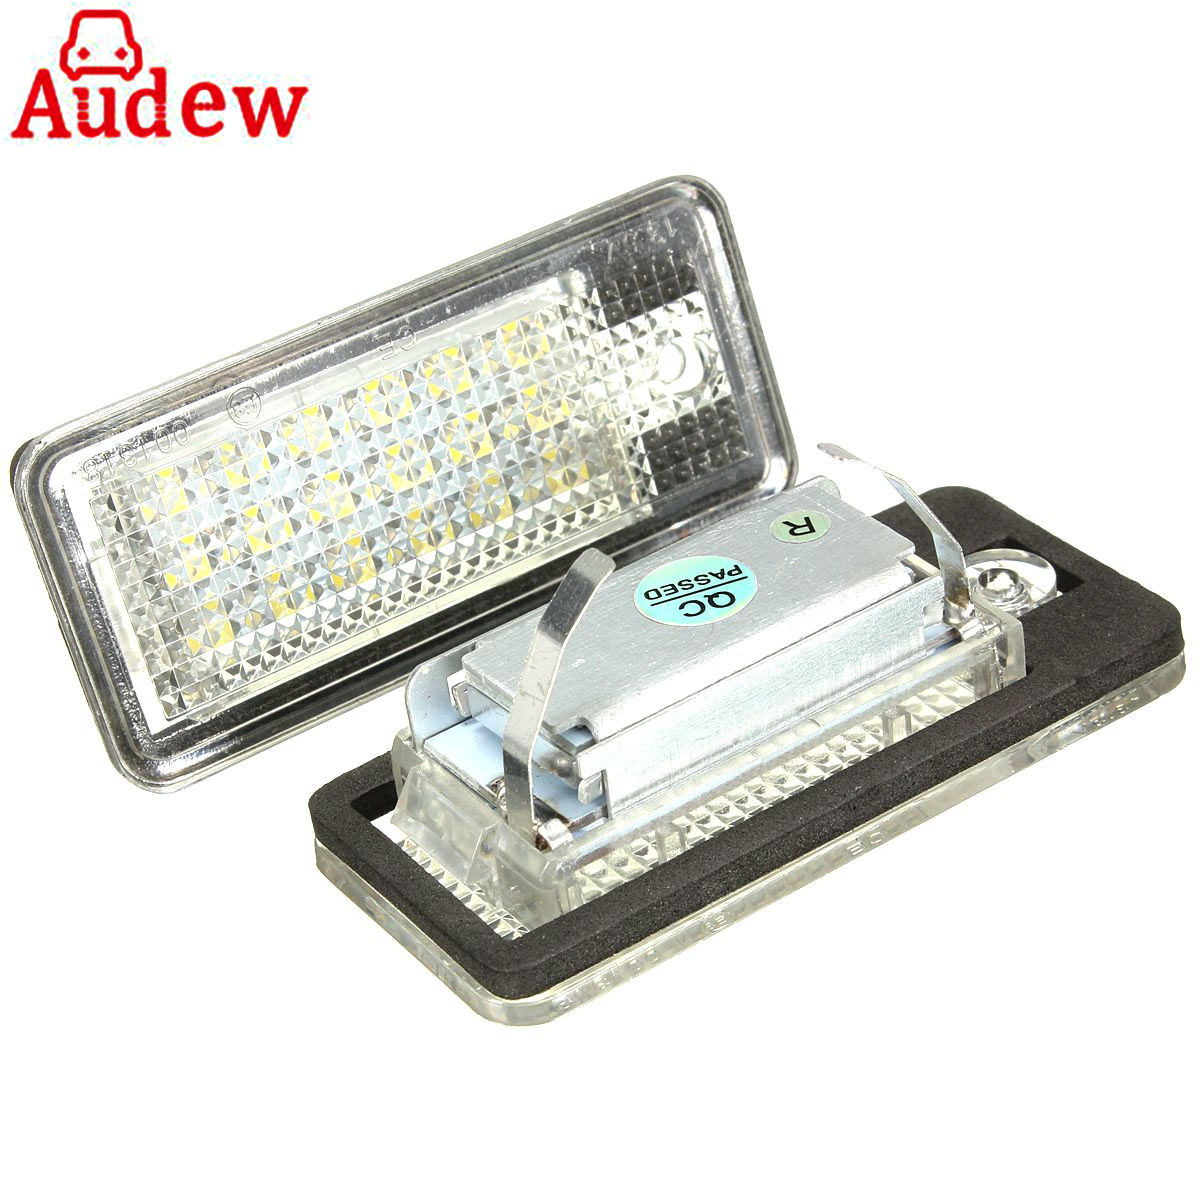 2Pcs Car Error Free 18 LED License Number Plate Light White Lamp For Audi A3 S3 A4 S4 B6 B7 A6 S6 A8 Q7 high quality plastic and led bulbs 2pcs white error free 18 led license plate light lamp kit for vw golf eos passat polo phaeton